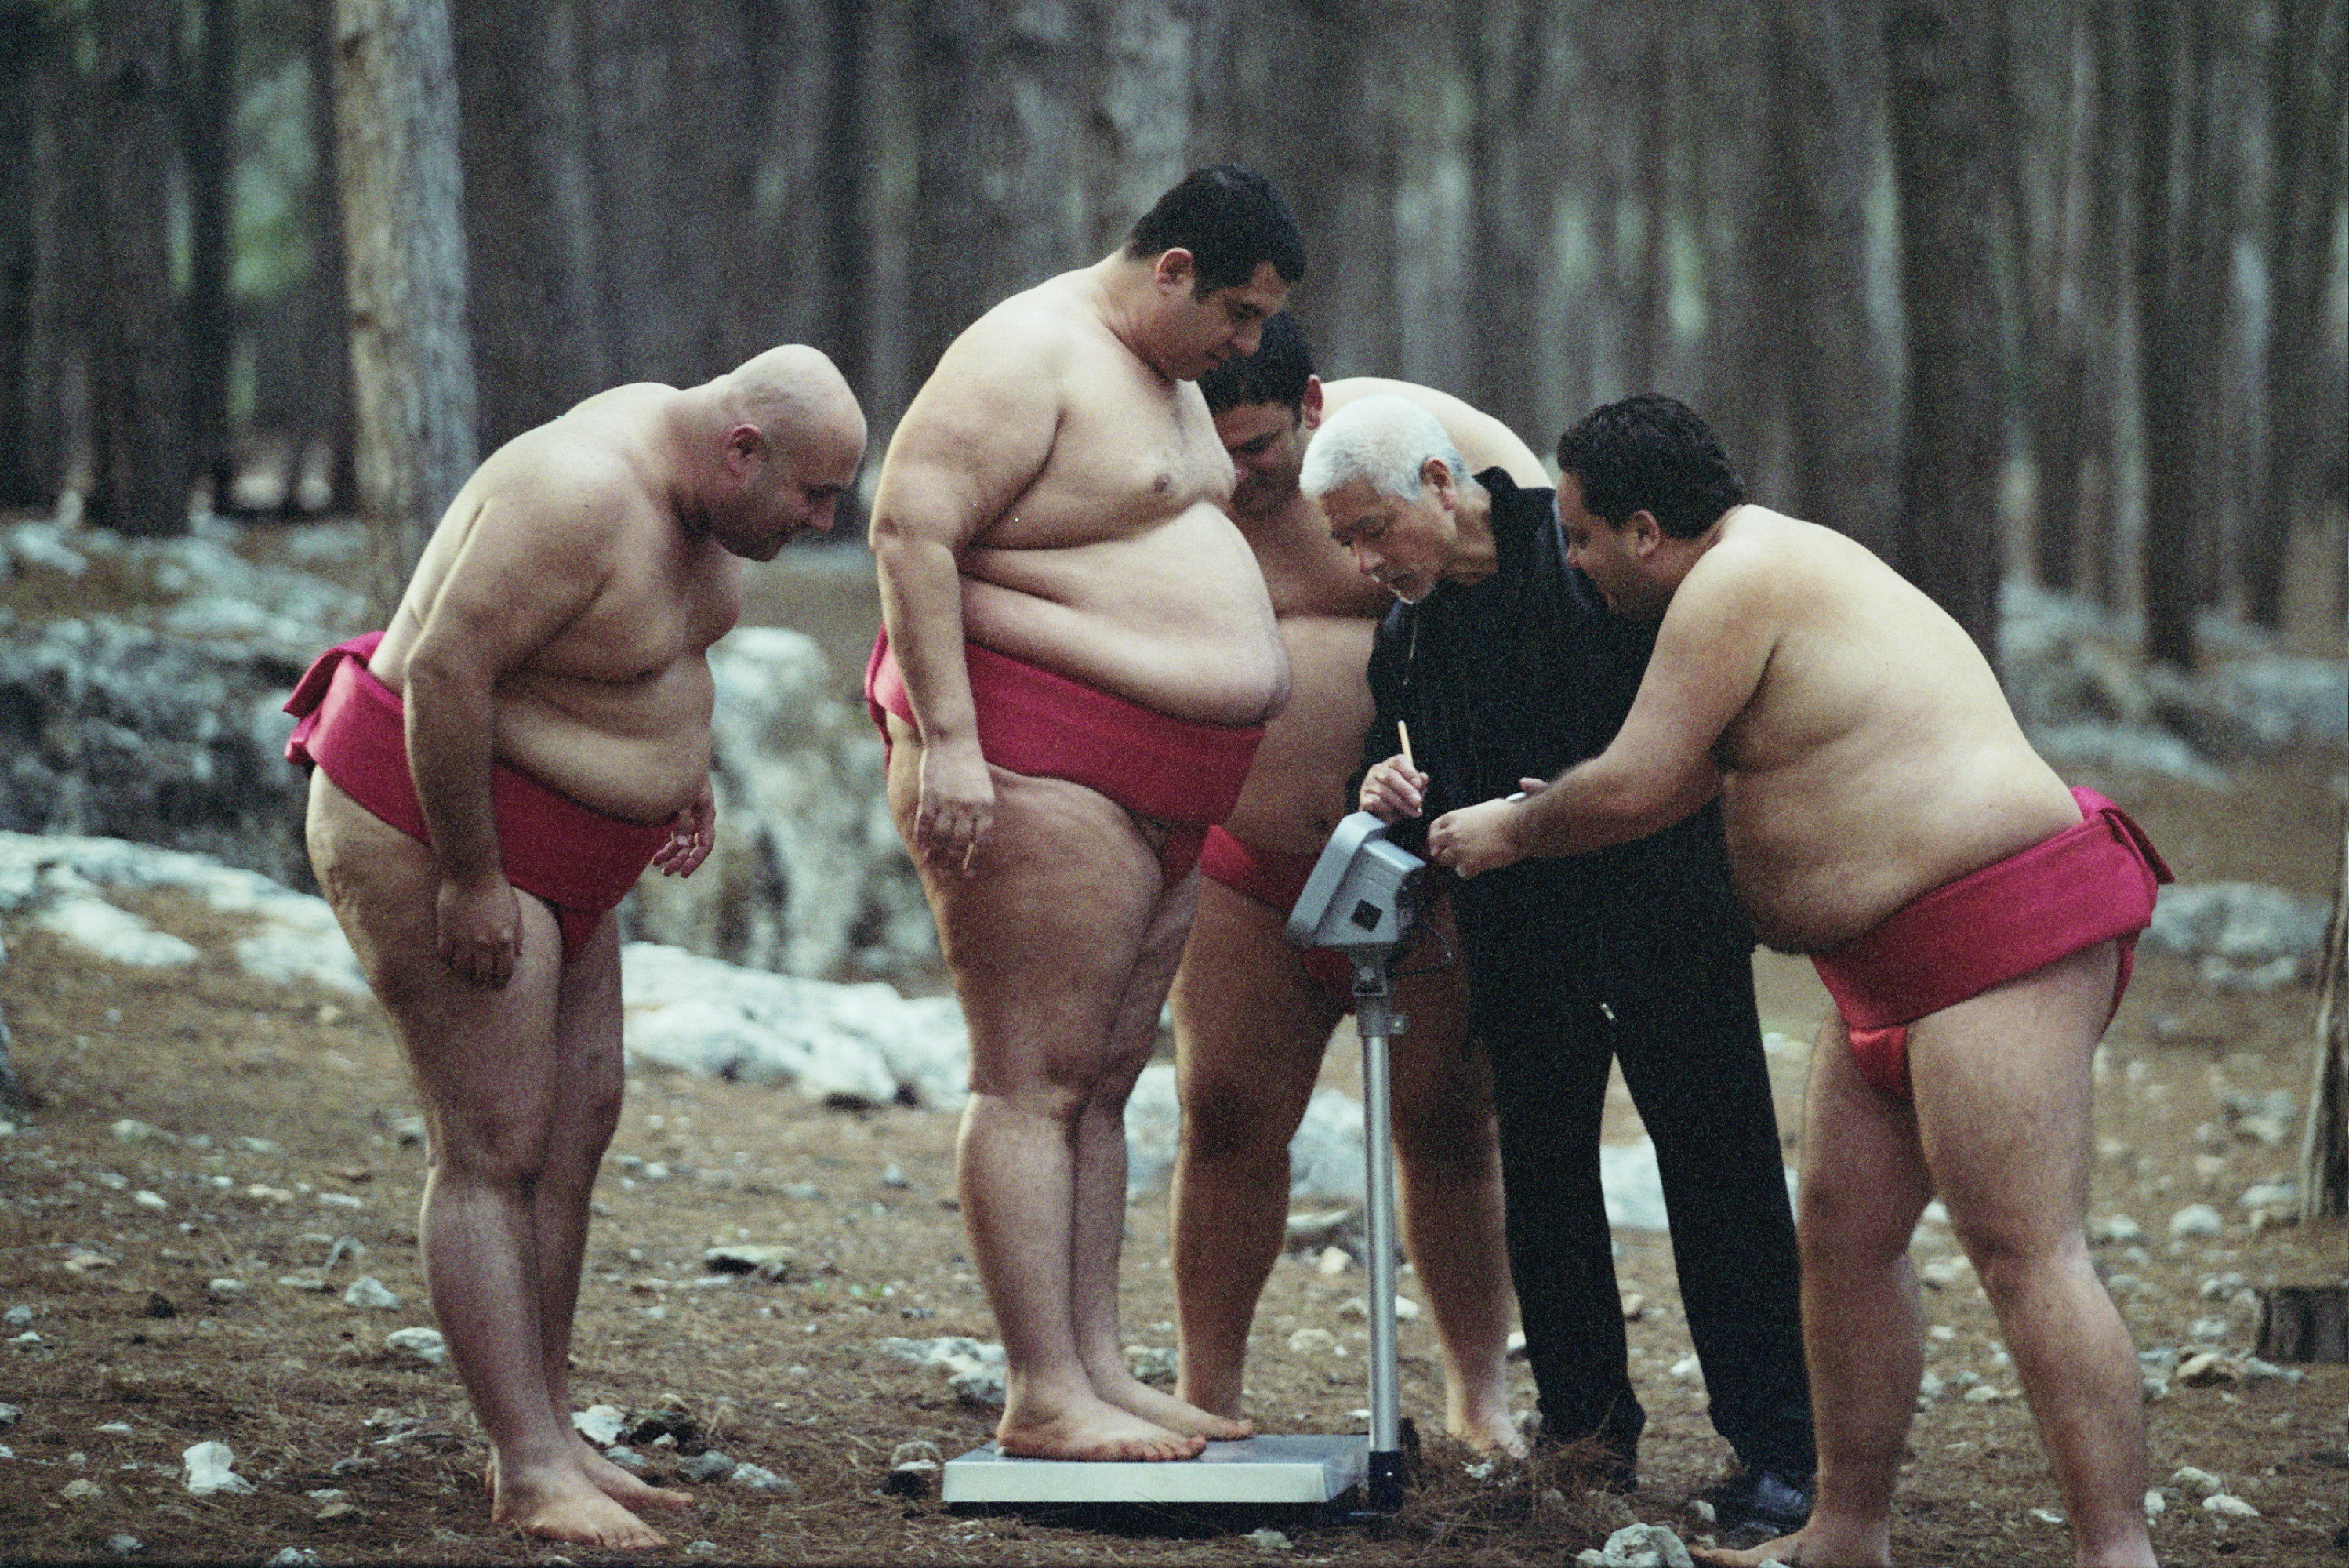 Dvir Benedek, Itzik Cohen, and Alon Dahan in A Matter of Size (2009)